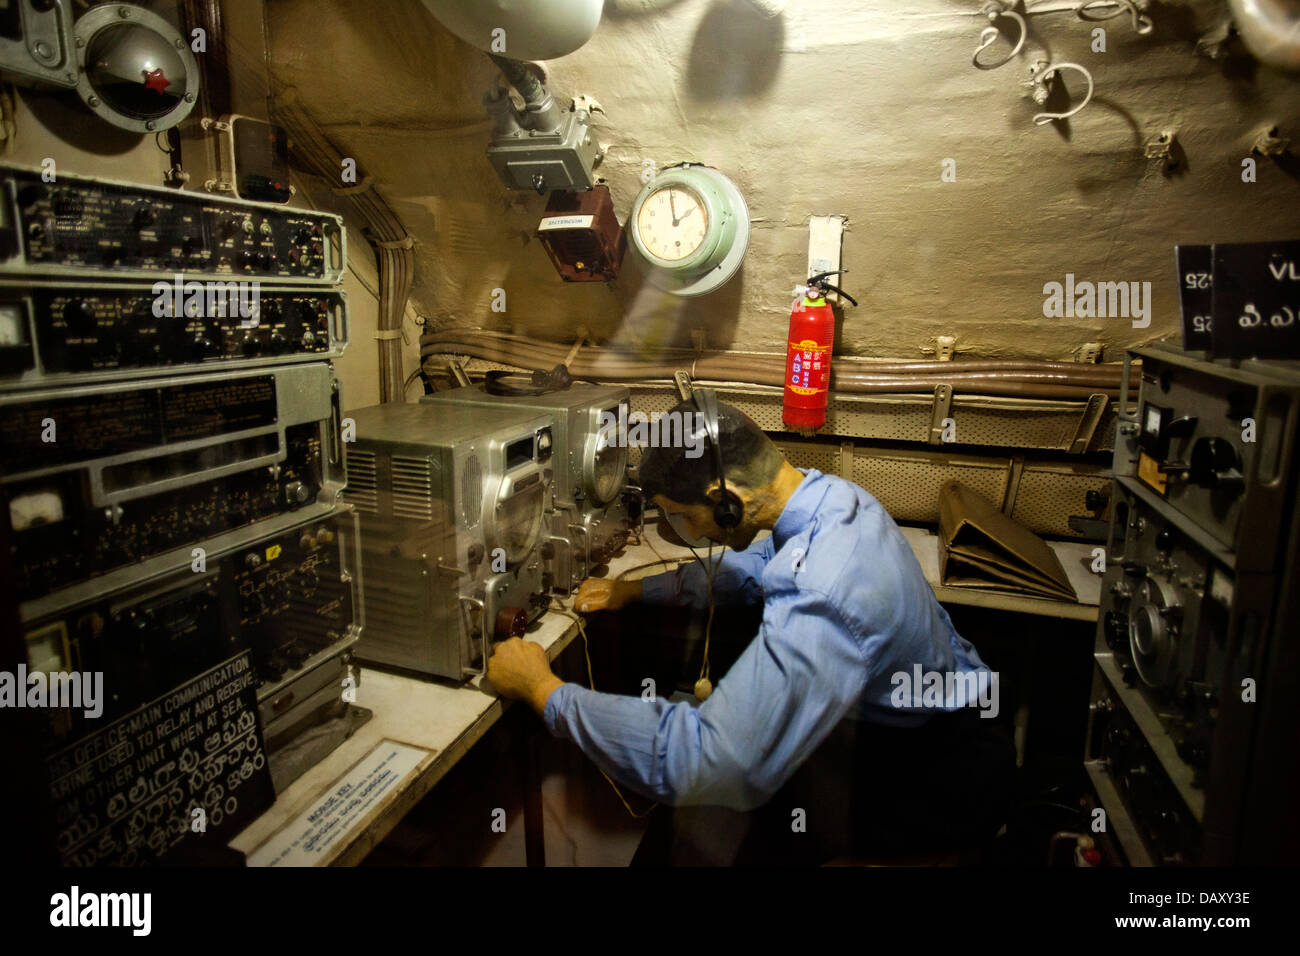 Statue of technician in the control room, INS - Stock Image